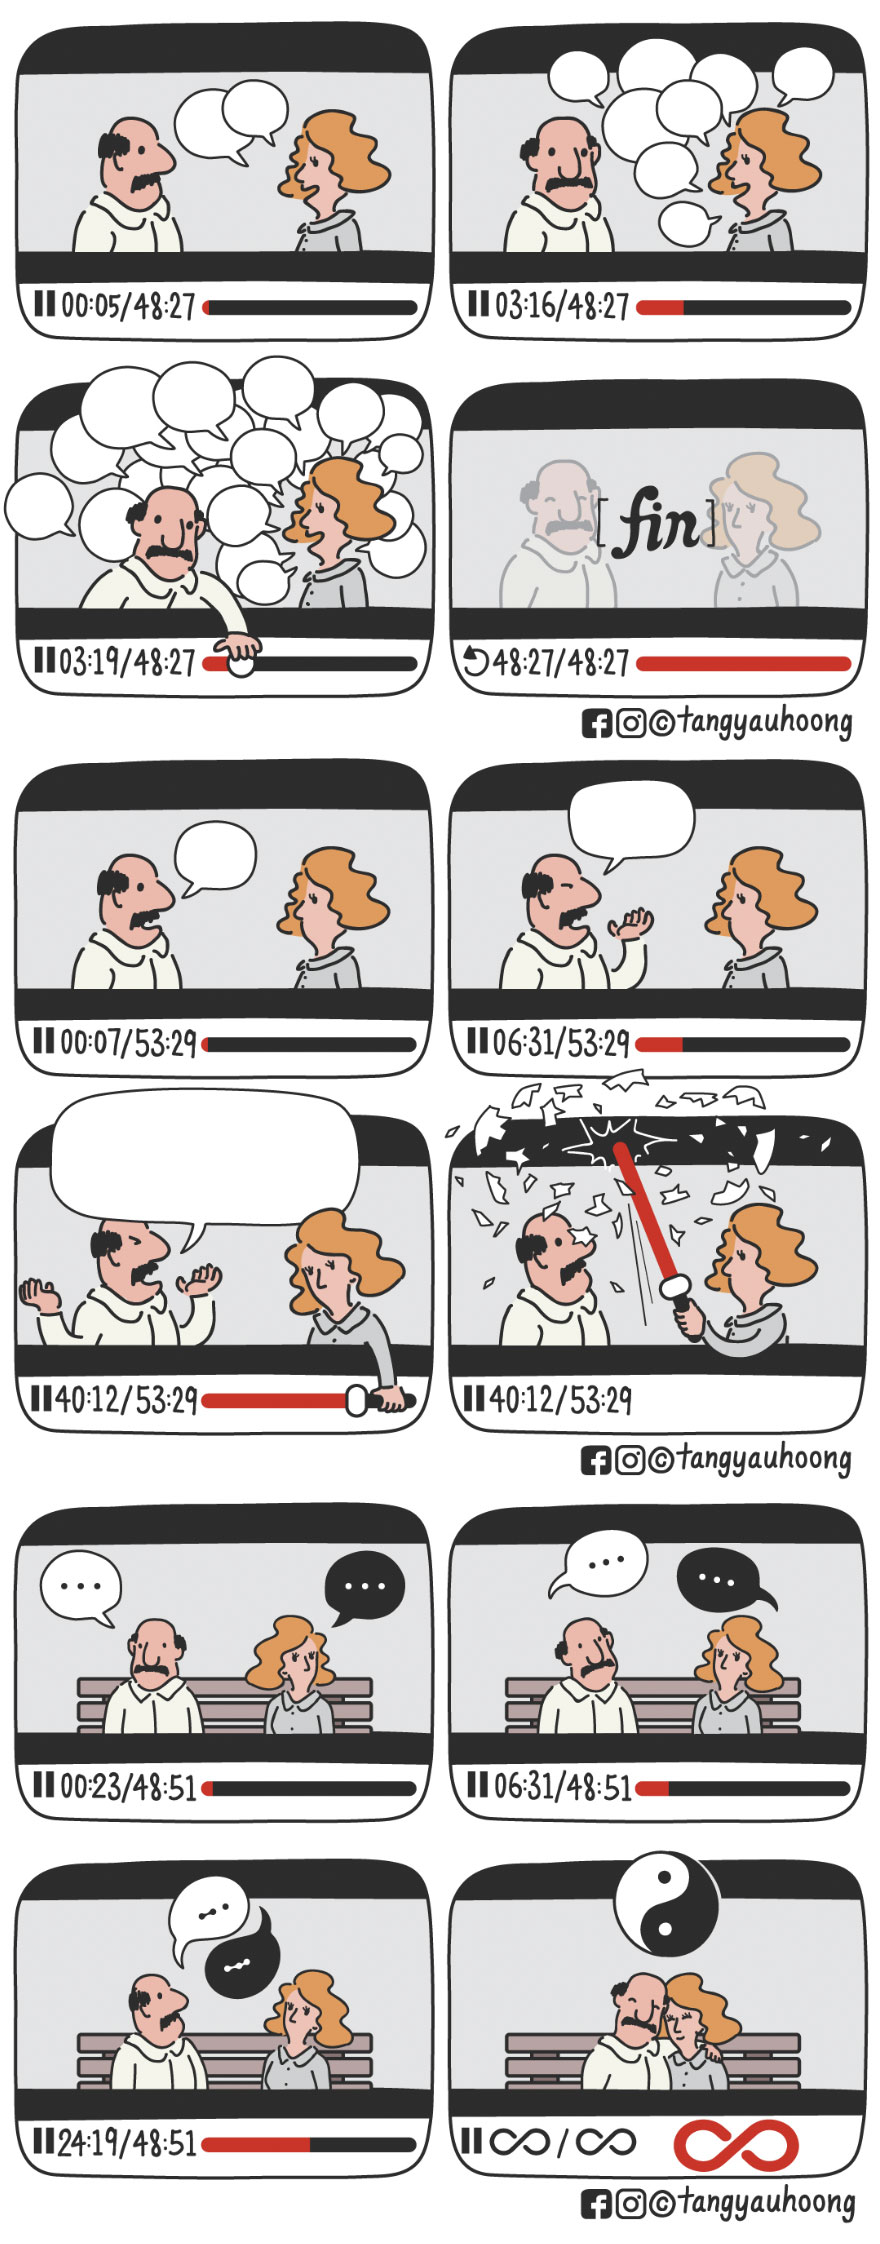 I Drew 23 Comics To Show How Unexpected Surprises Happen When We Look At Things Differently.